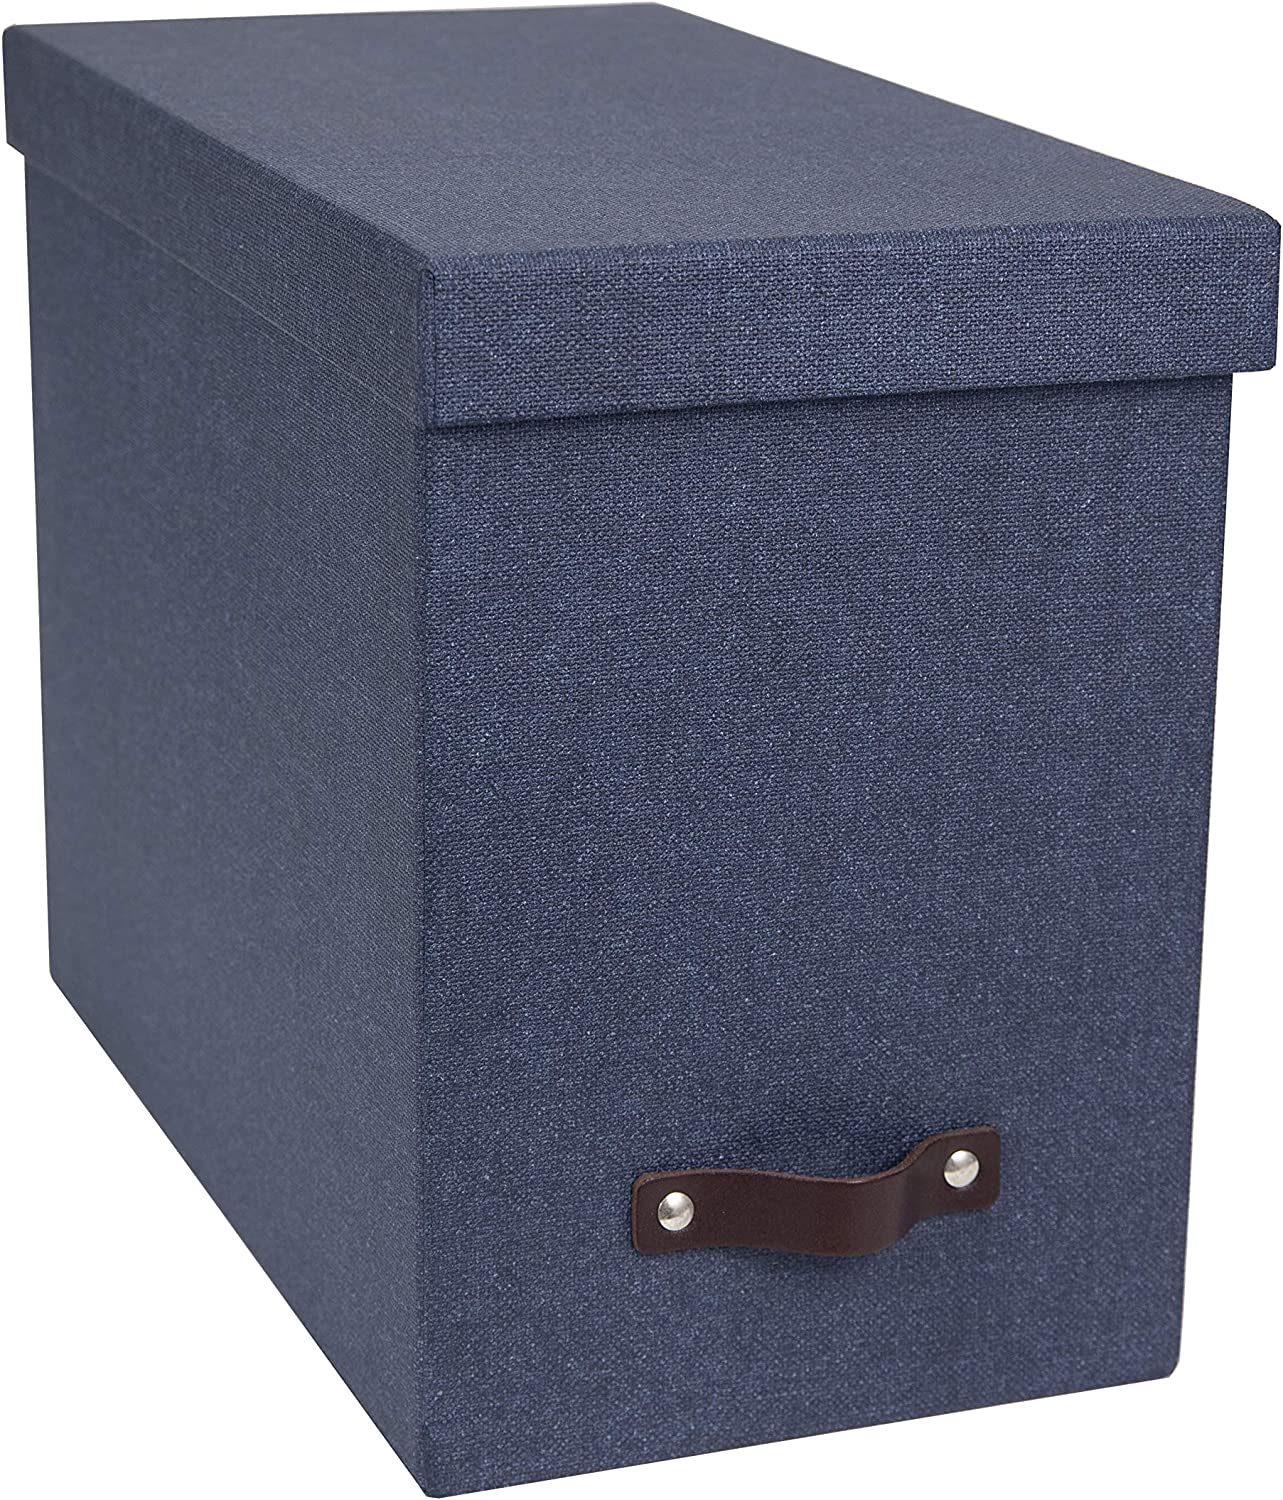 Bigso John Canvas Fiberboard Desktop File Storage Box, 10.2 x 7 x 13 in, Blue